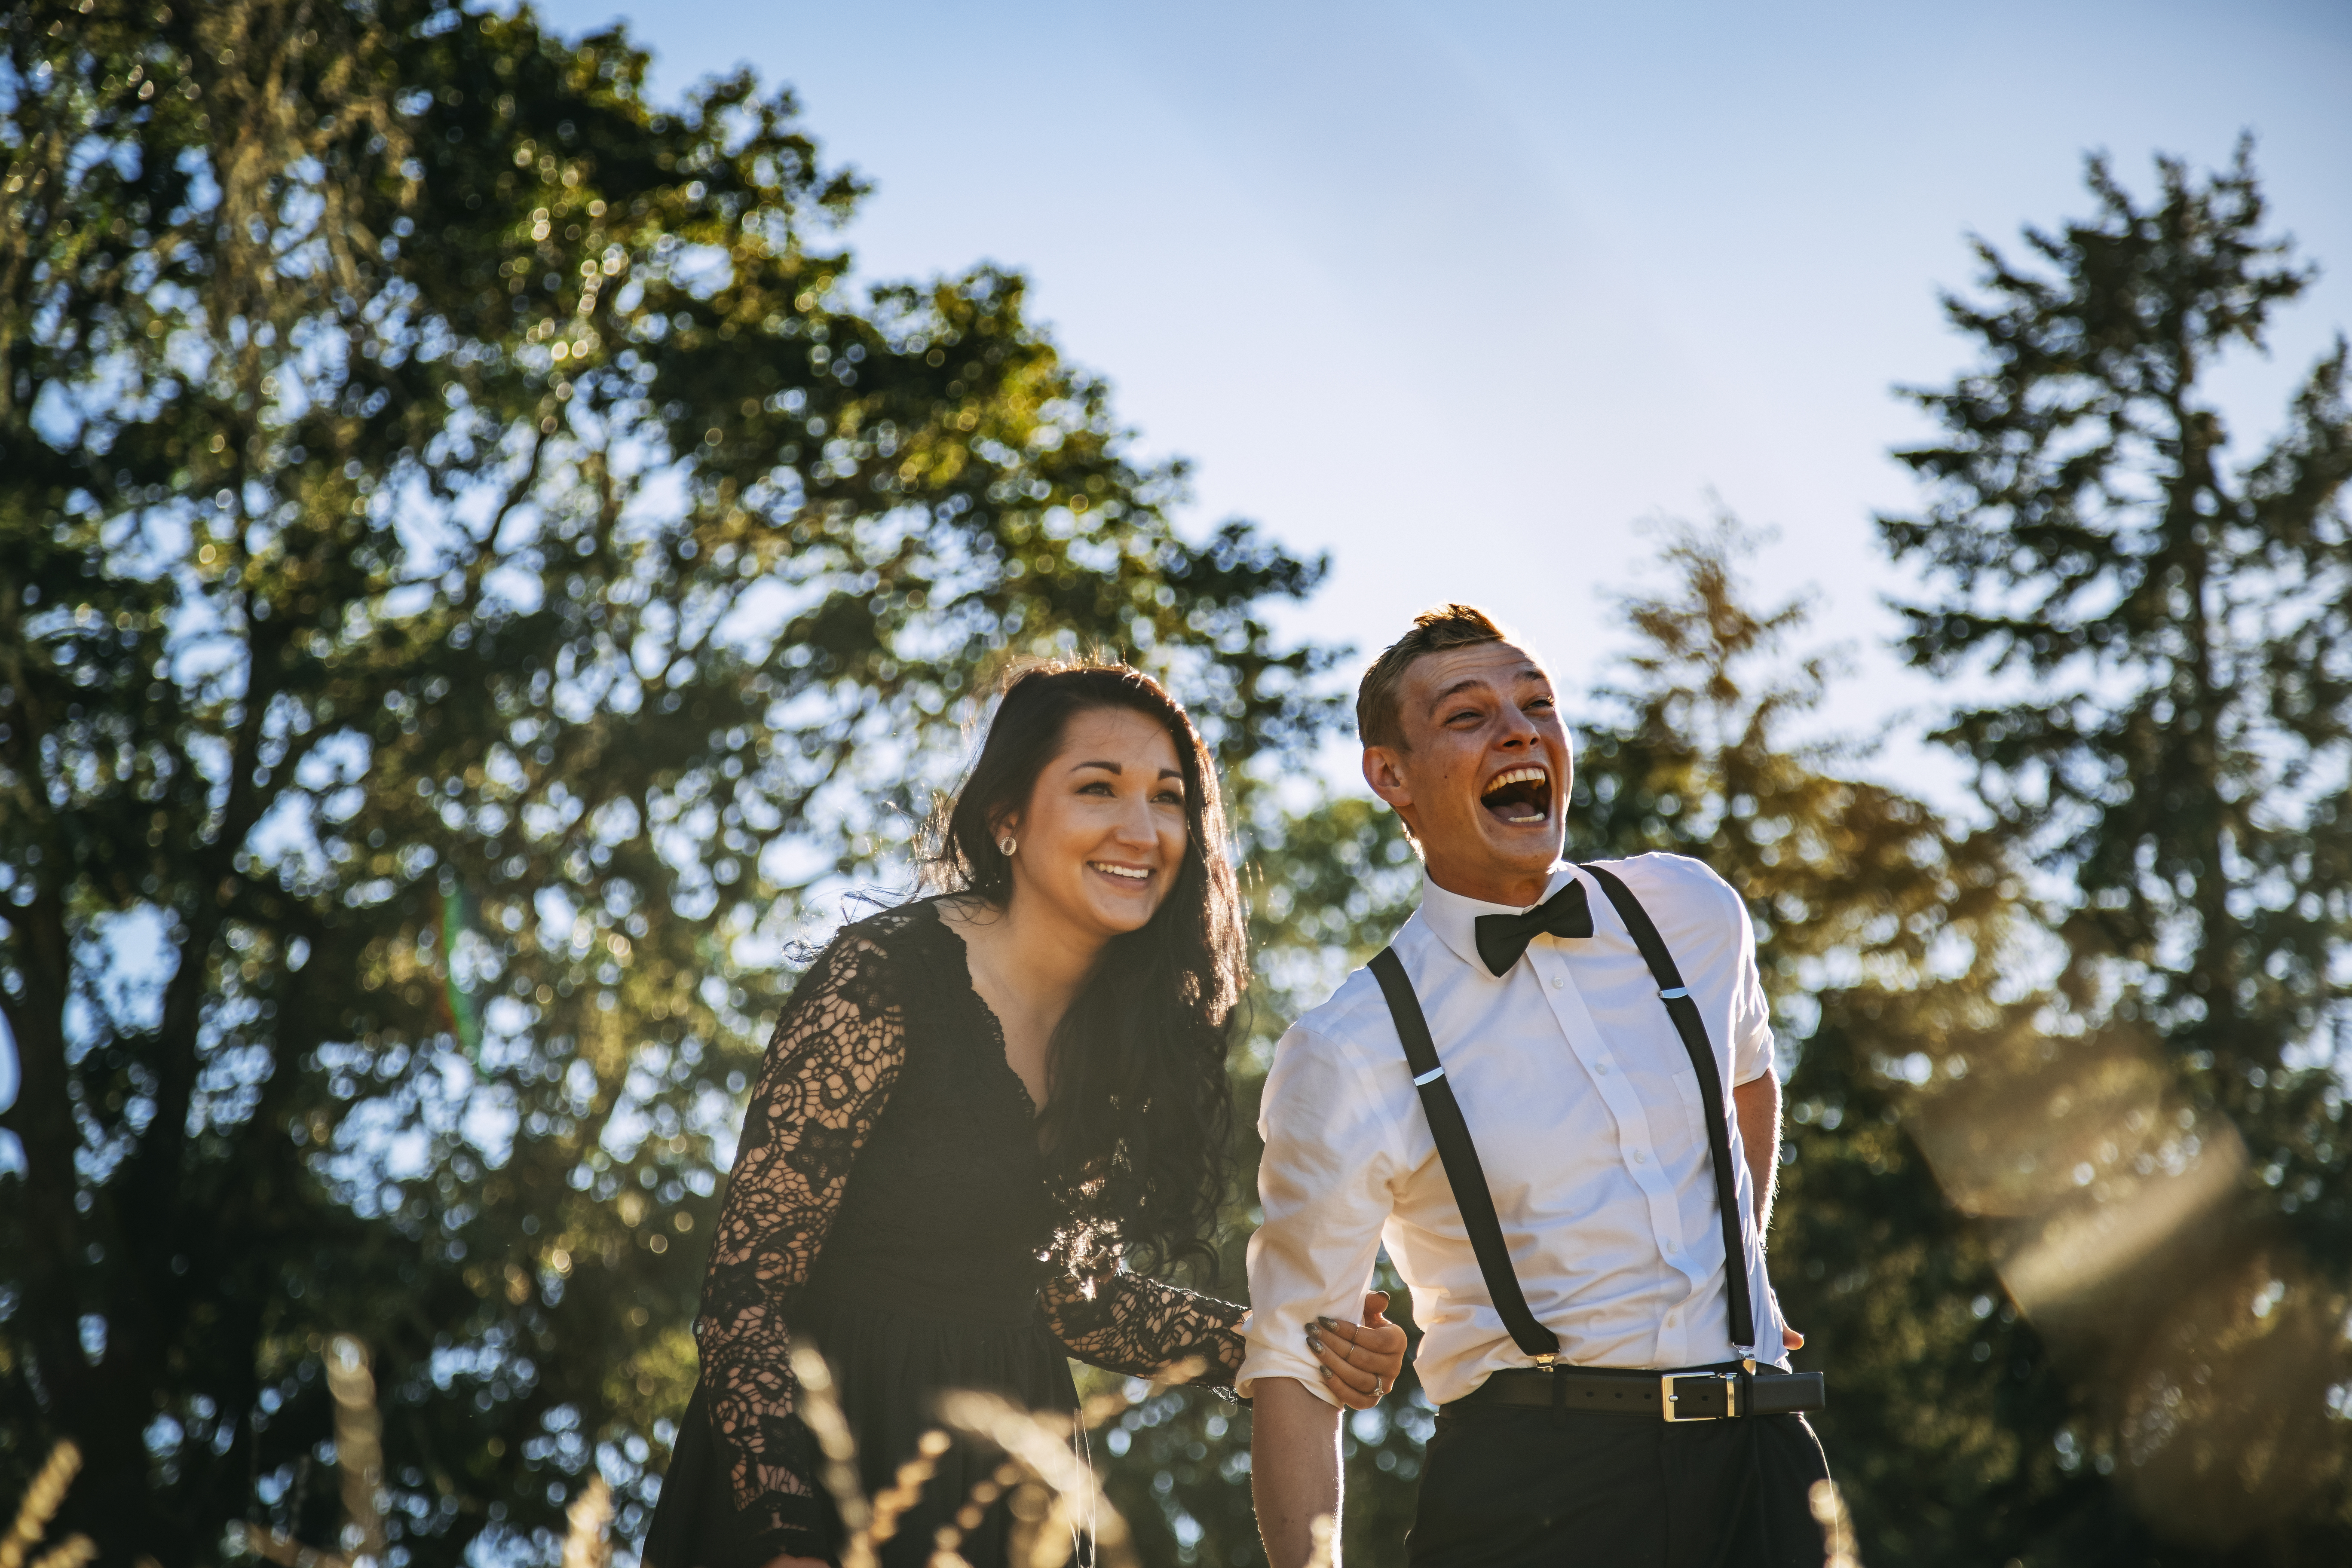 Laughing couple engagement video